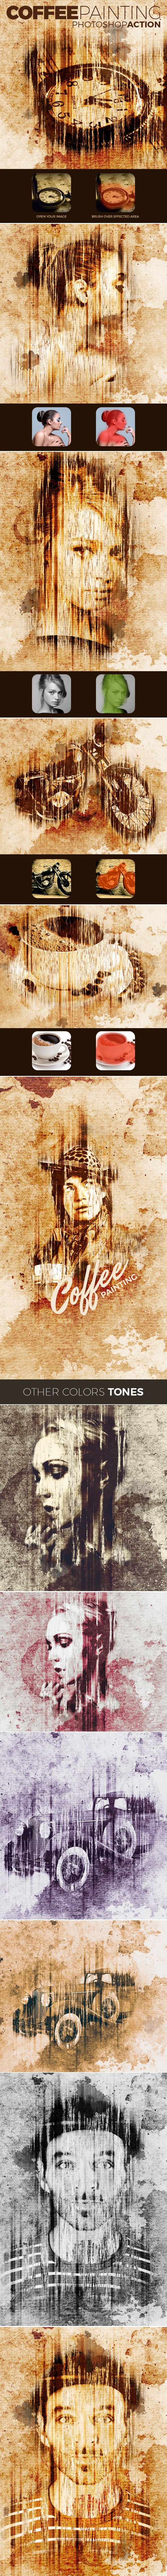 Coffee Painting Action - Photo Effects Actions